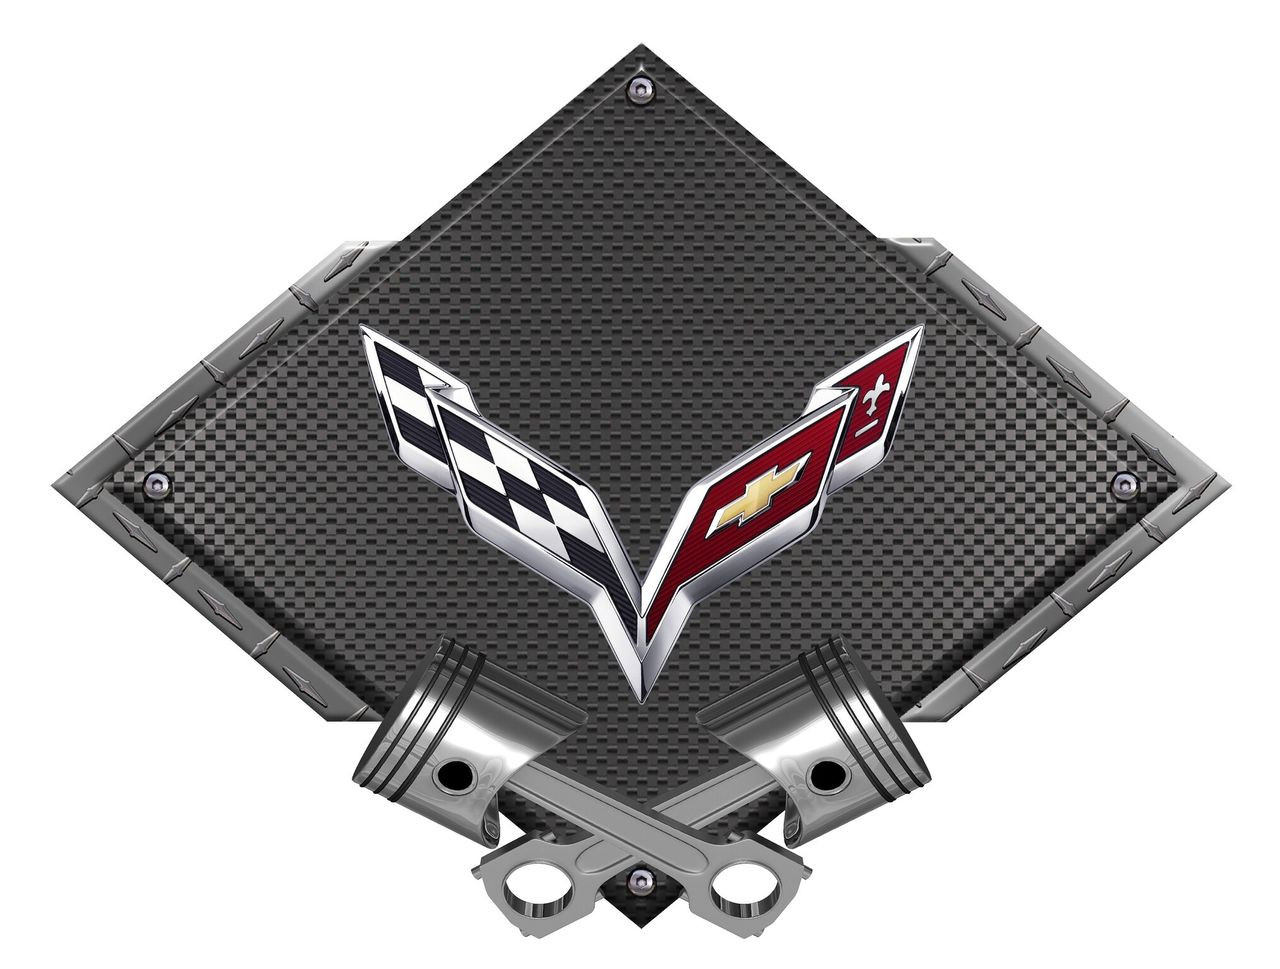 CORVETTE C4 Crossed Flags Metal Magnet Sign 5 X 3 Photo Steel